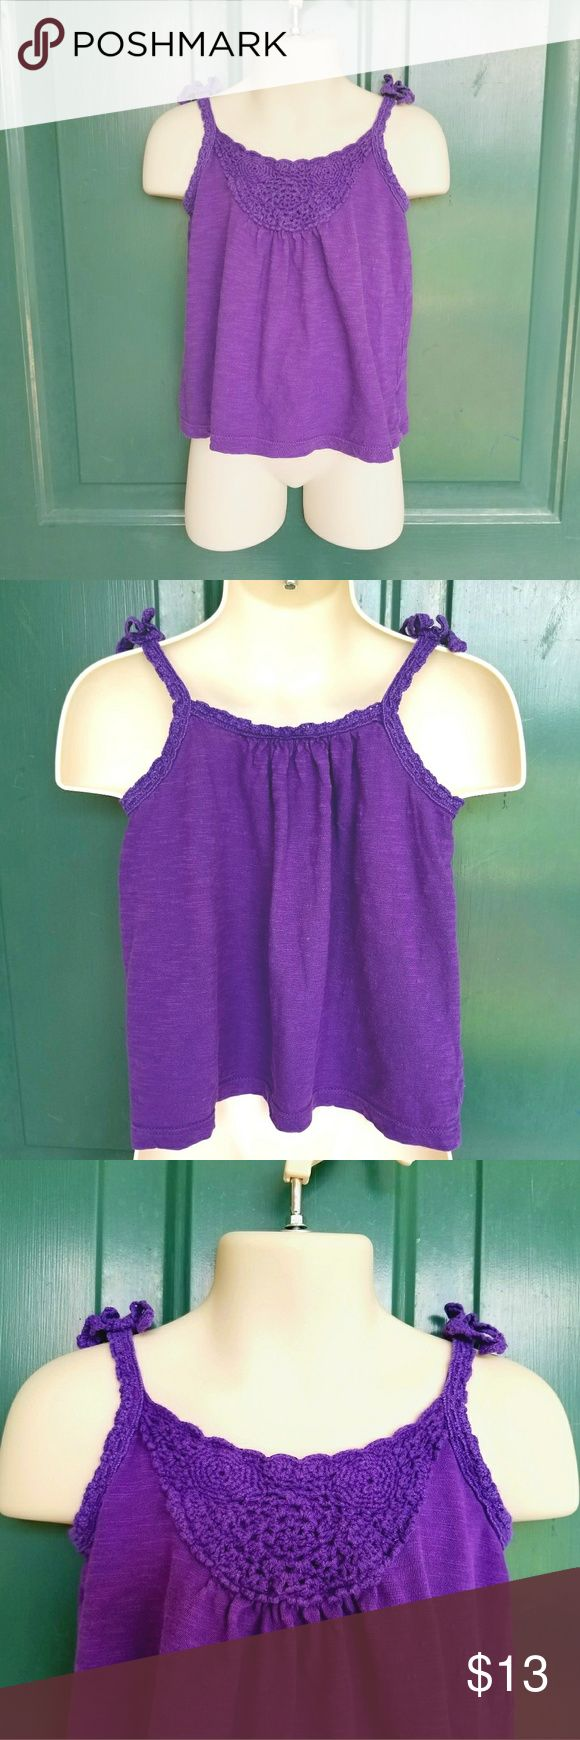 Gap Baby 2T Crocheted Purple Tank Top Cute!!! Comes from a smoke free pet free home. No stains or rips. Please ask any questions if you need to and offers are always welcome!!! GAP Shirts & Tops Tank Tops